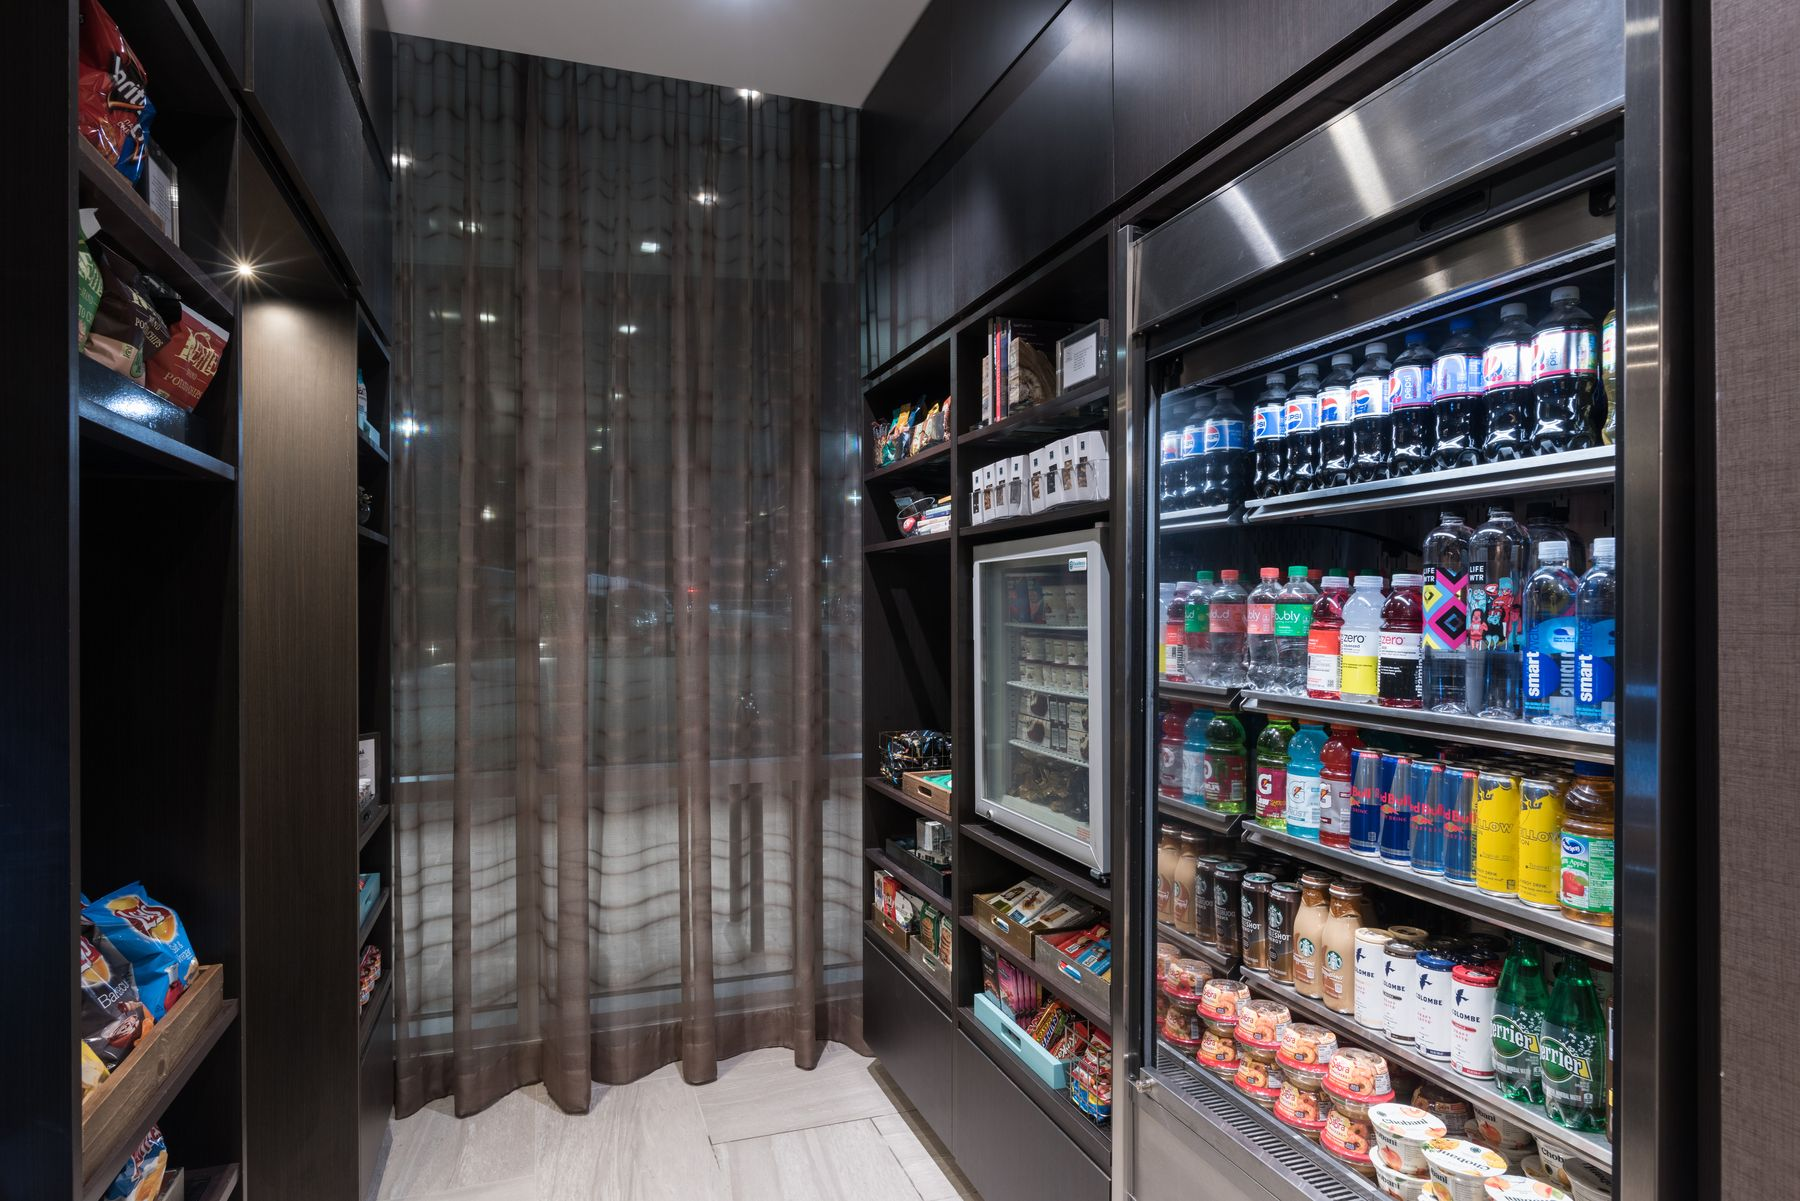 Grab and go snack pantry